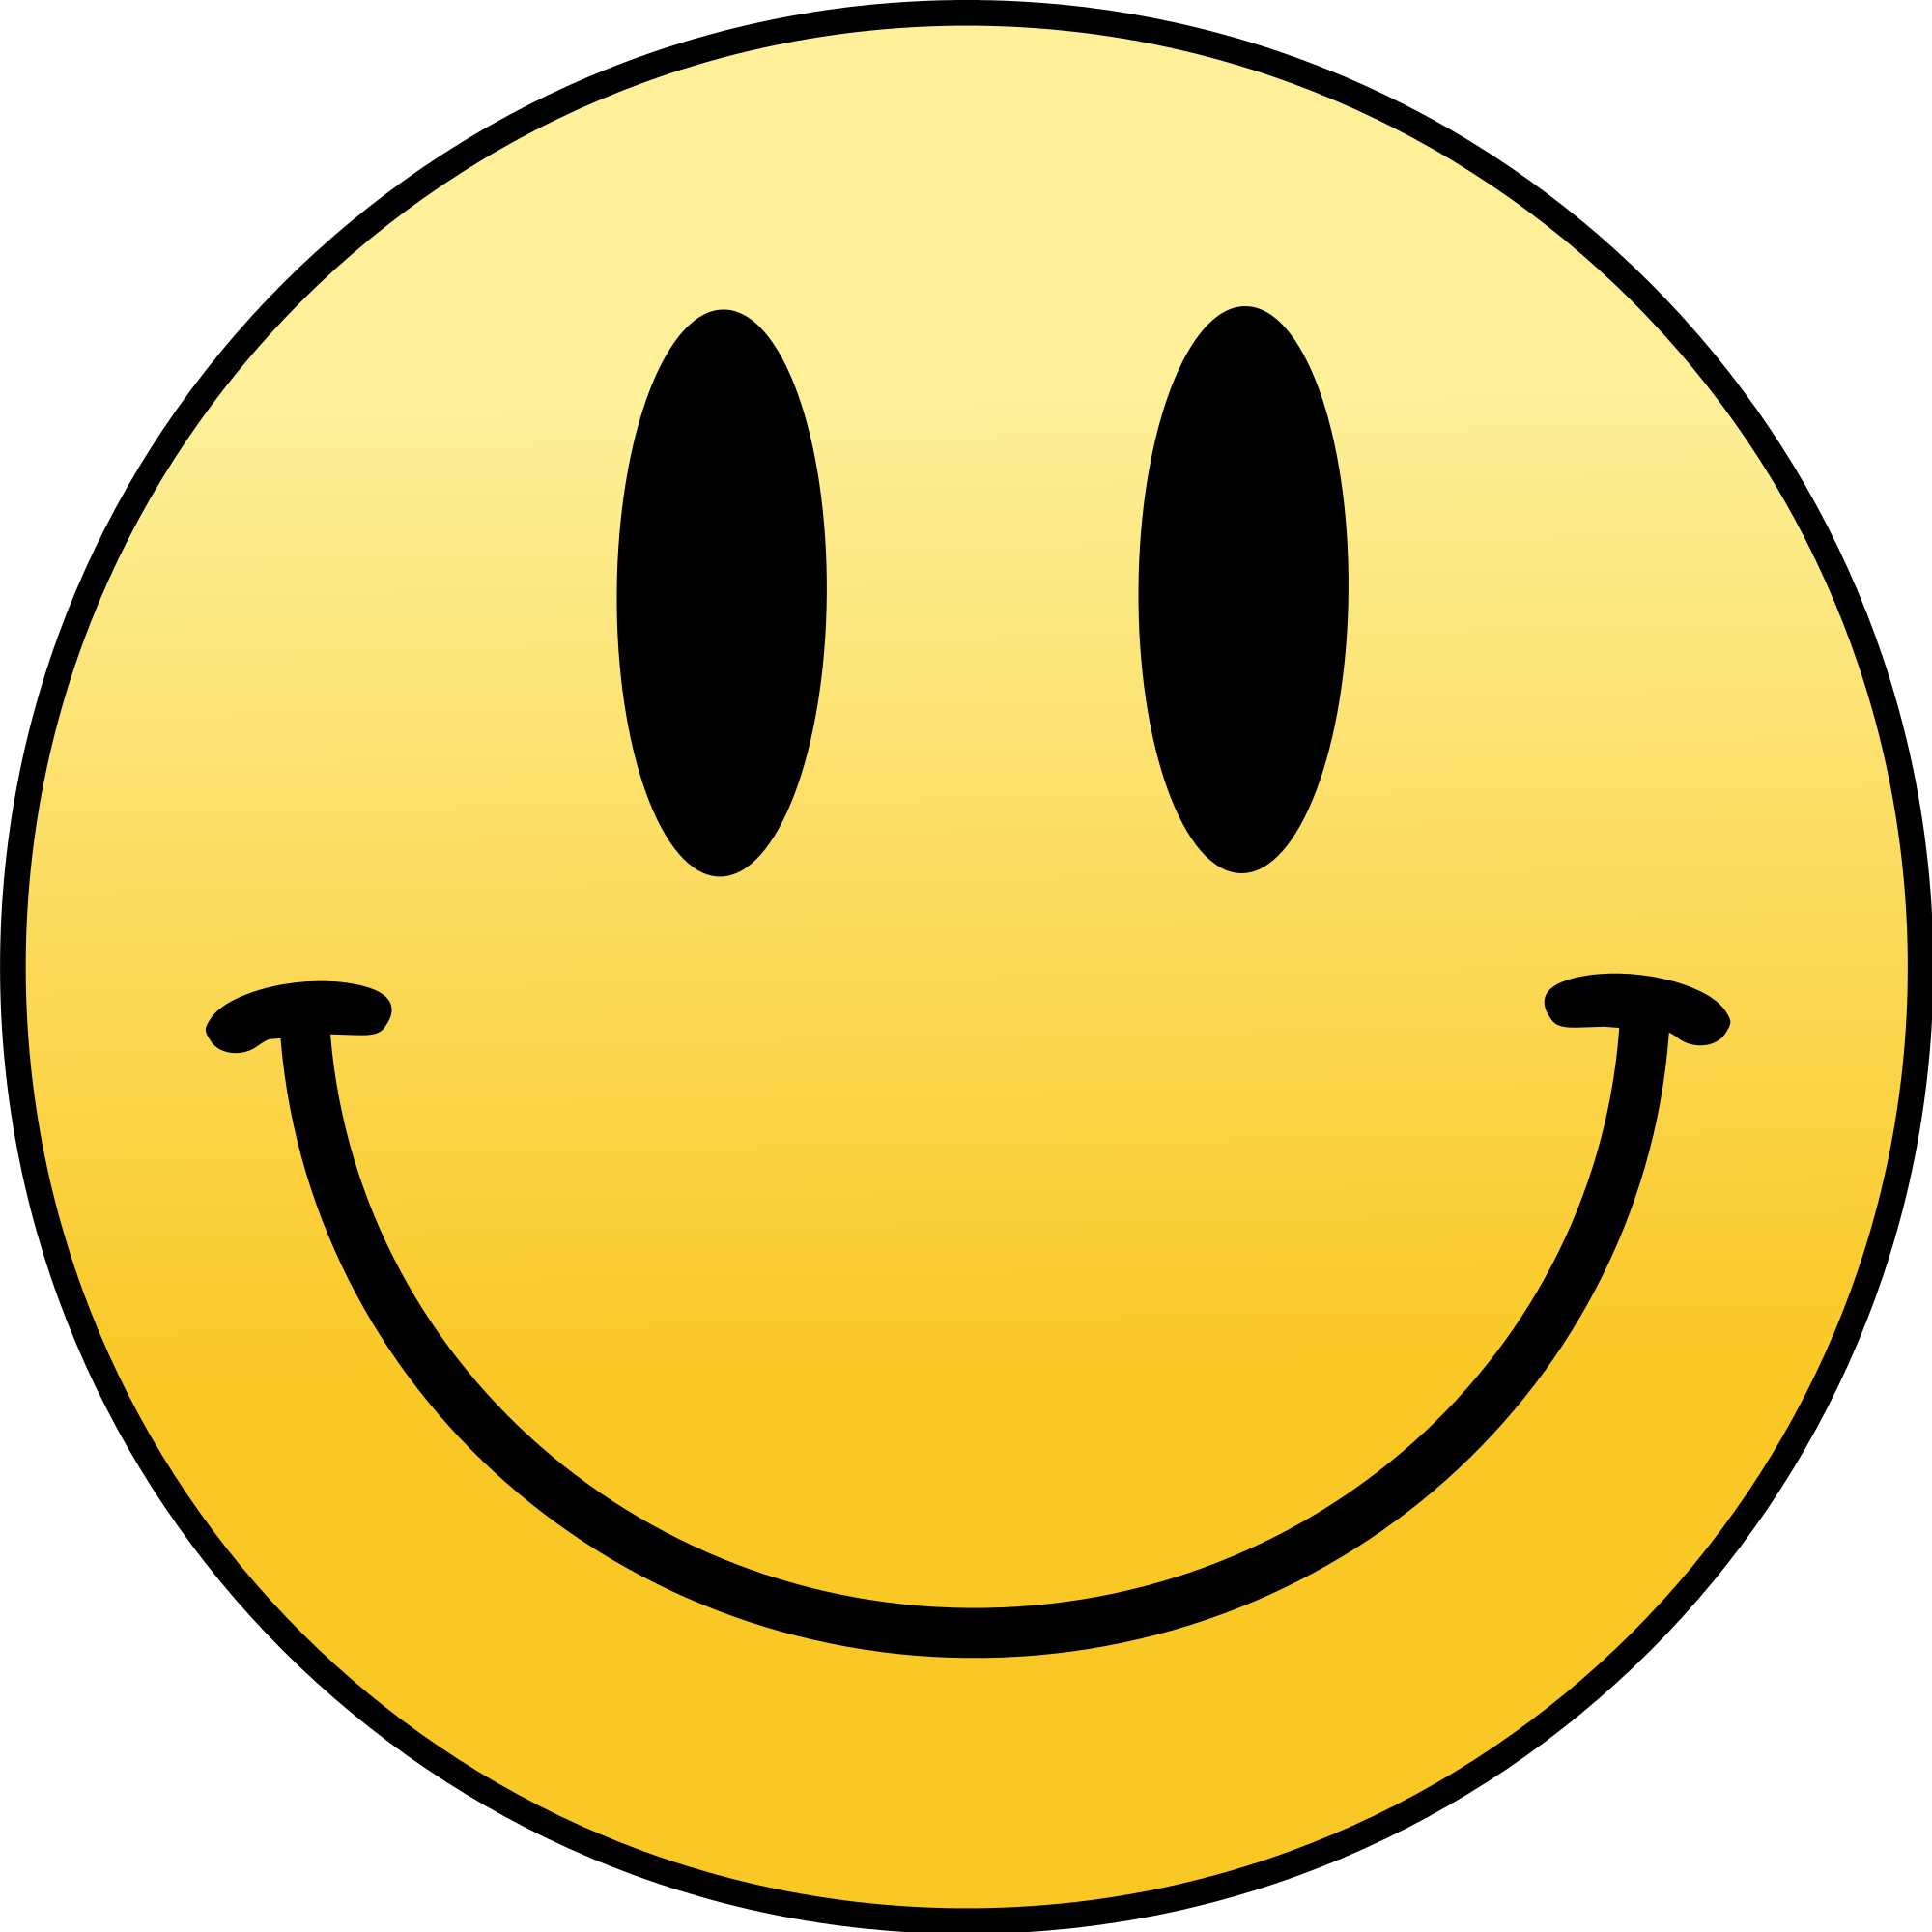 Laughing face png. Free hd transparent images